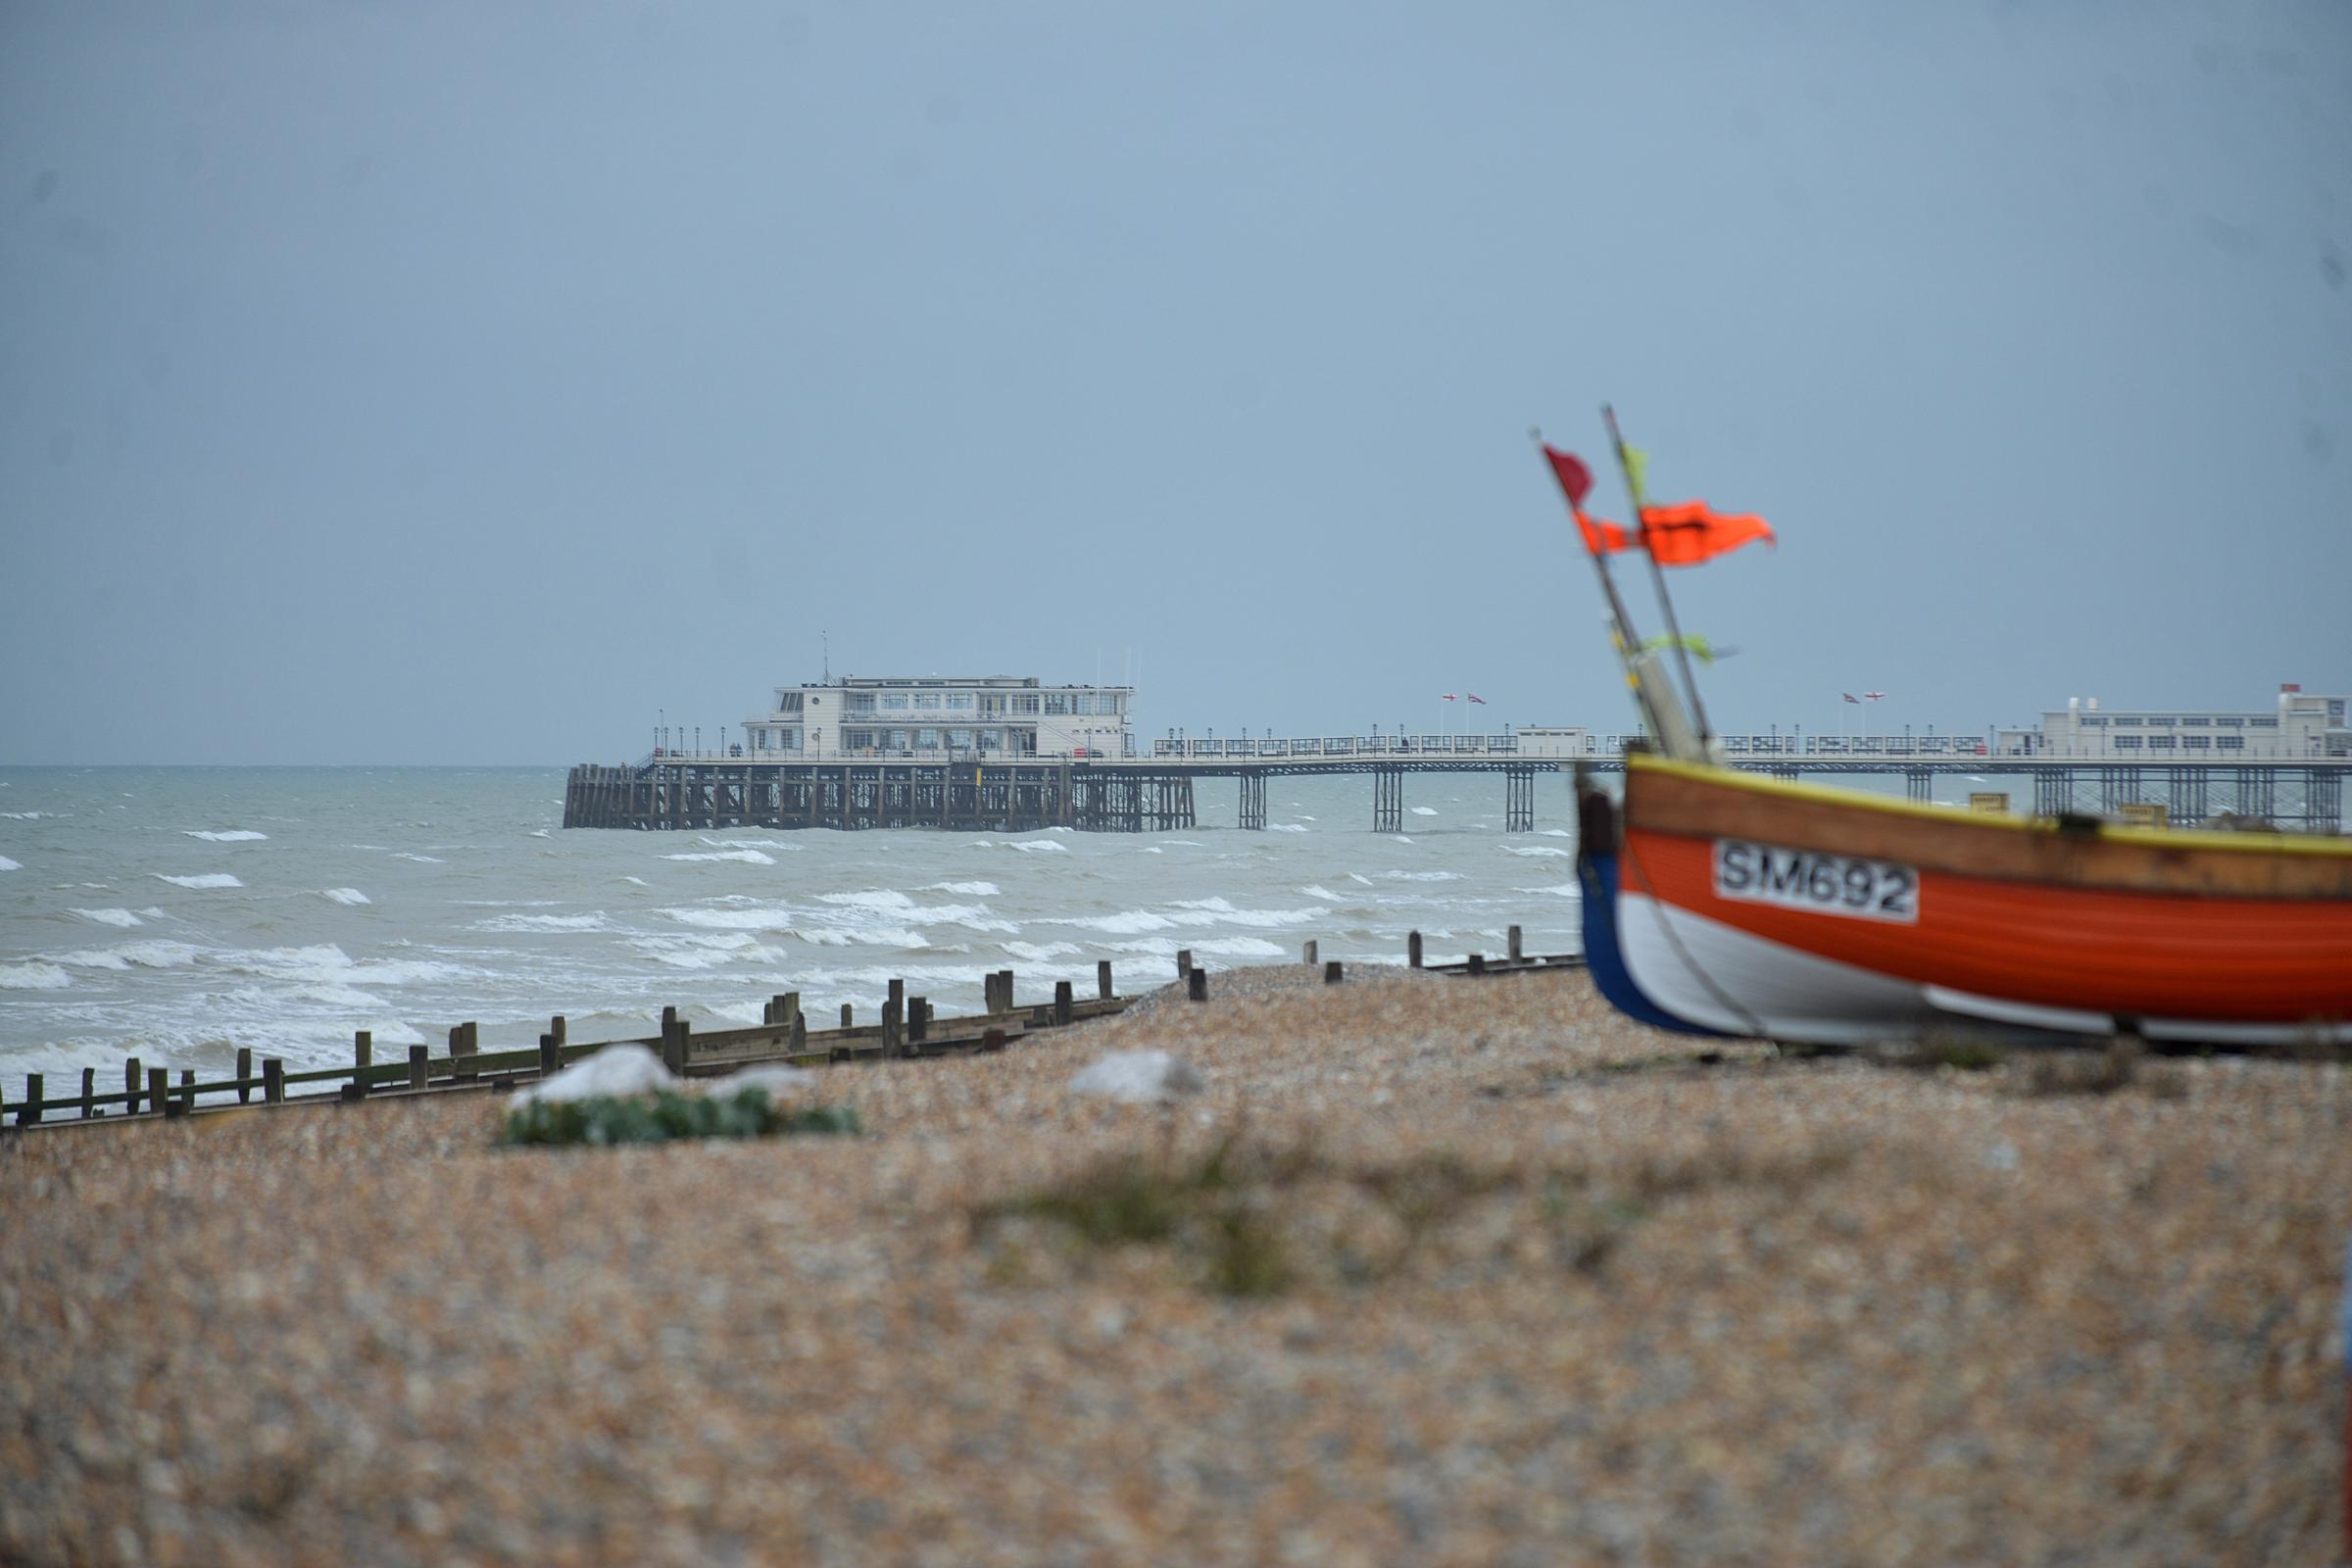 Fishing boat Worthing beach with Worthing pier. Picture by Tony Wood.